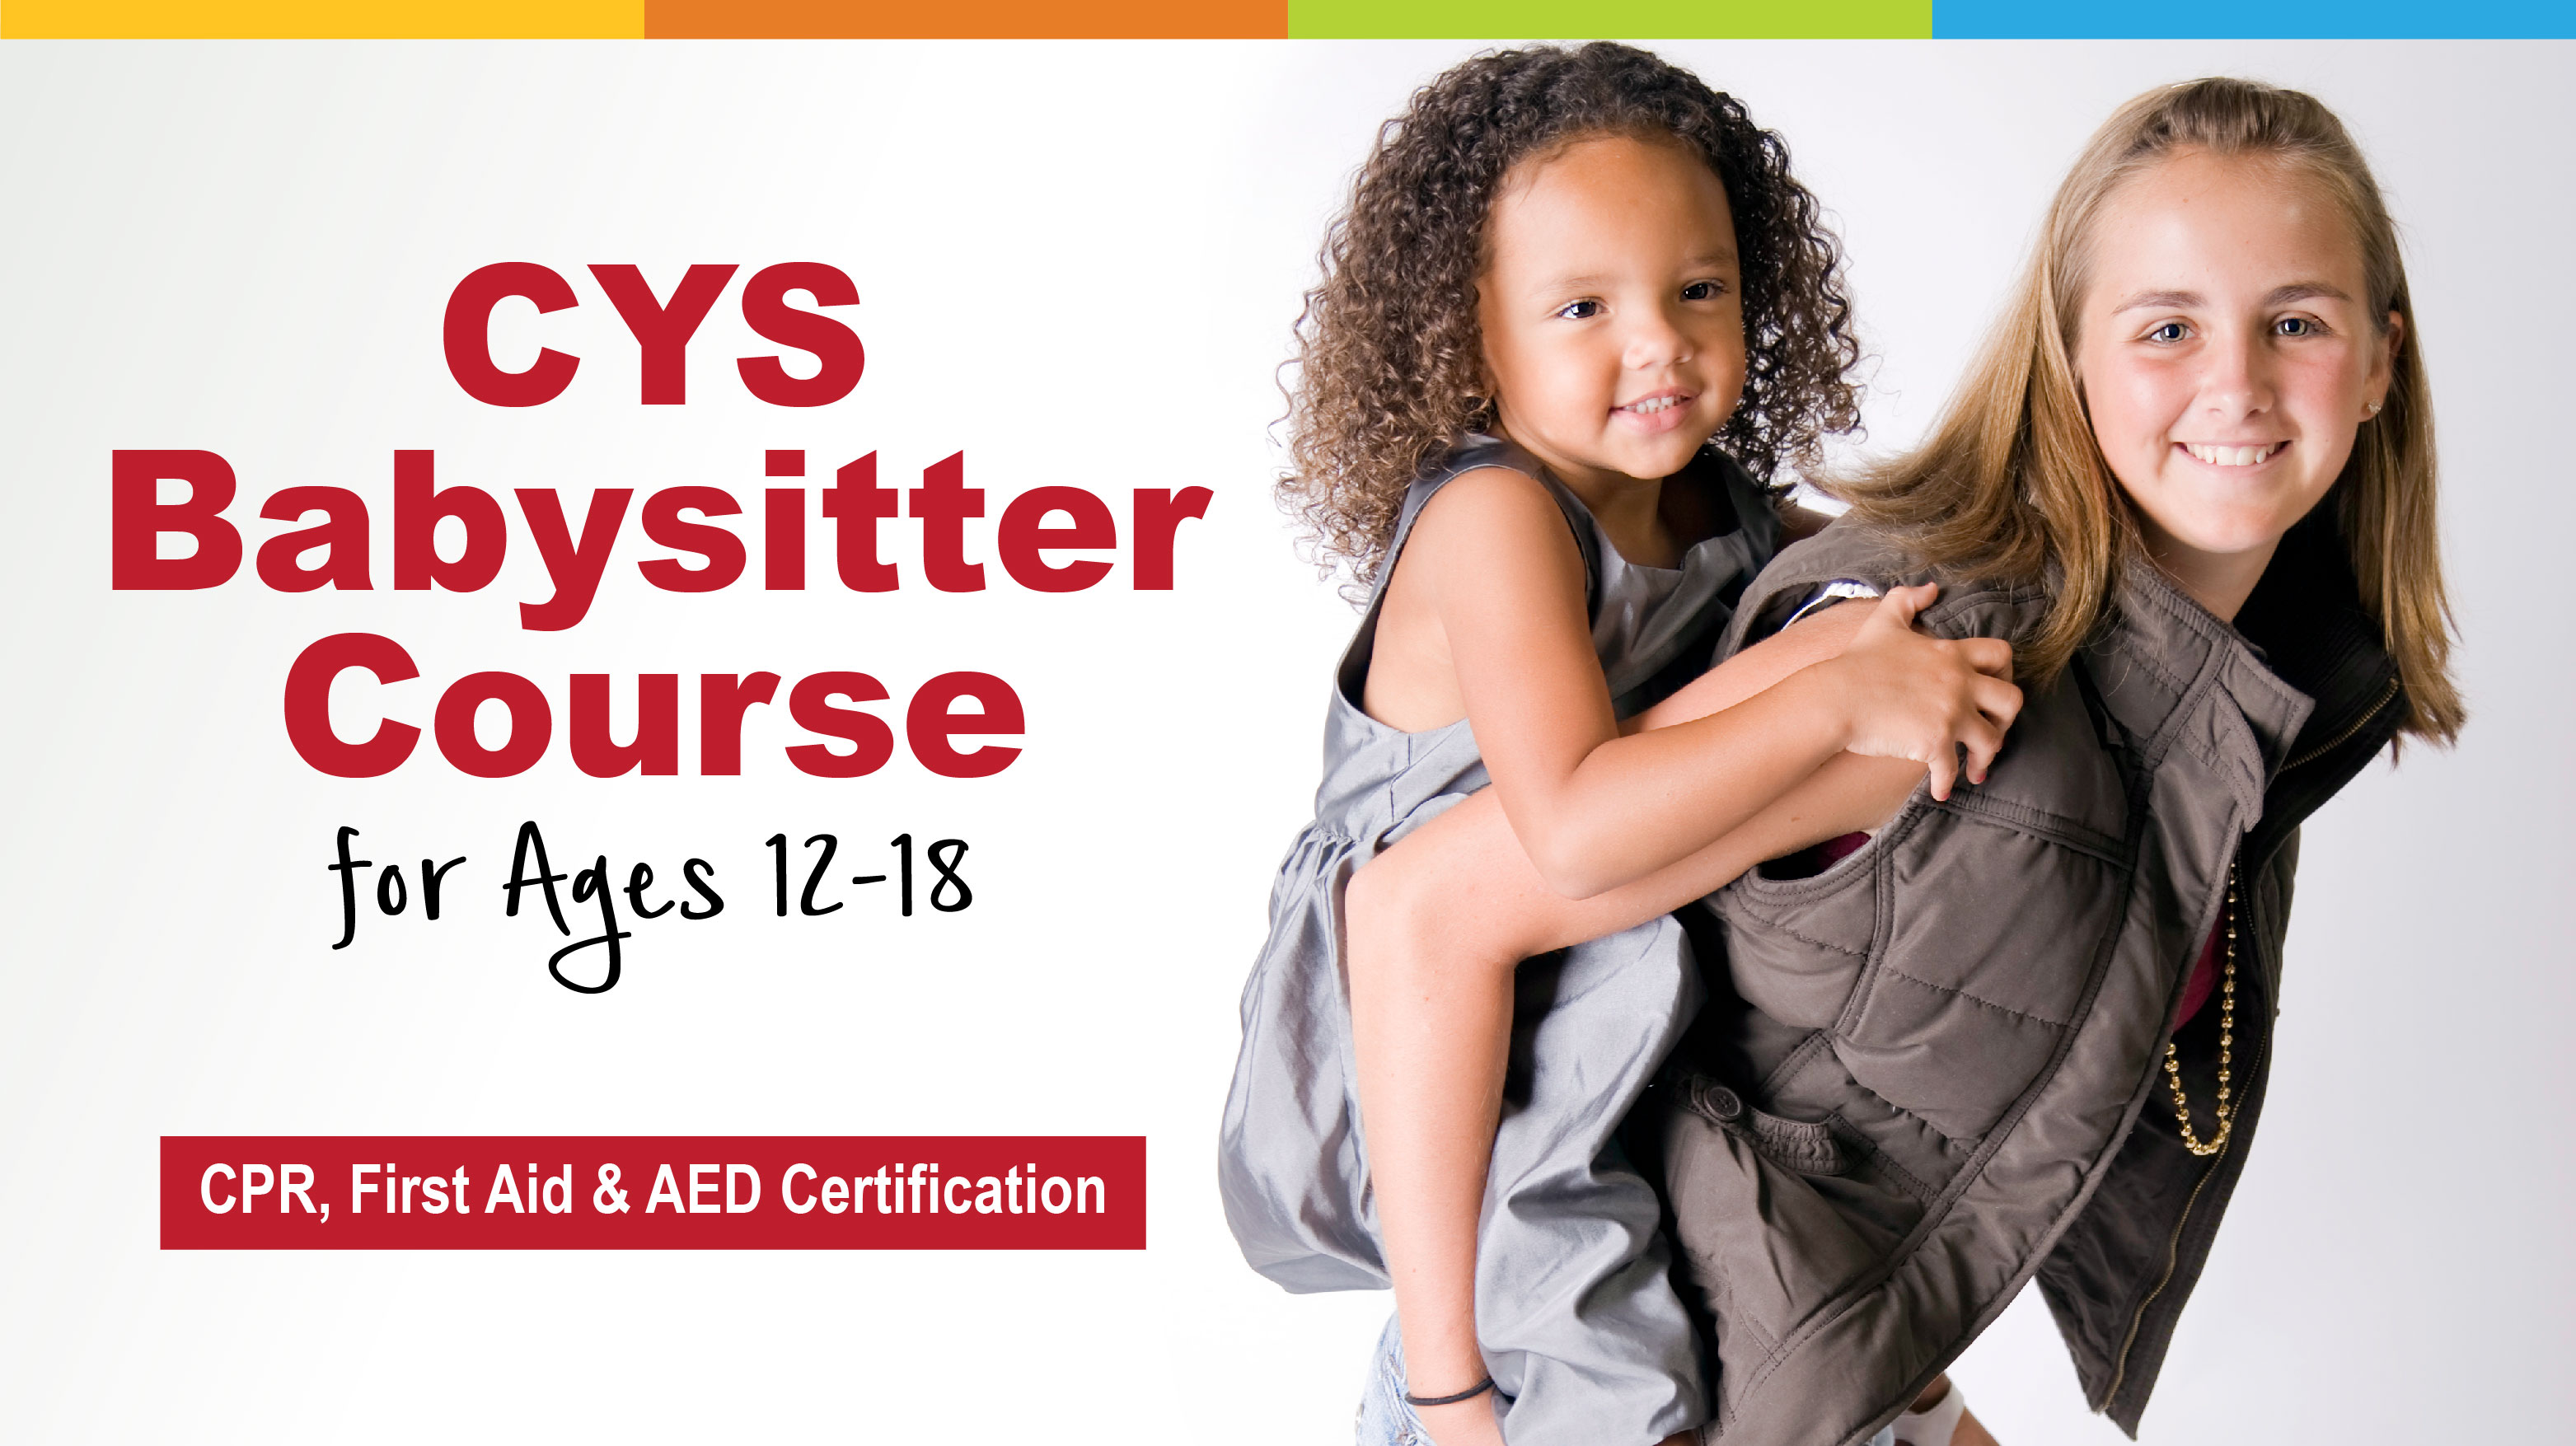 CYS Babysitter Course